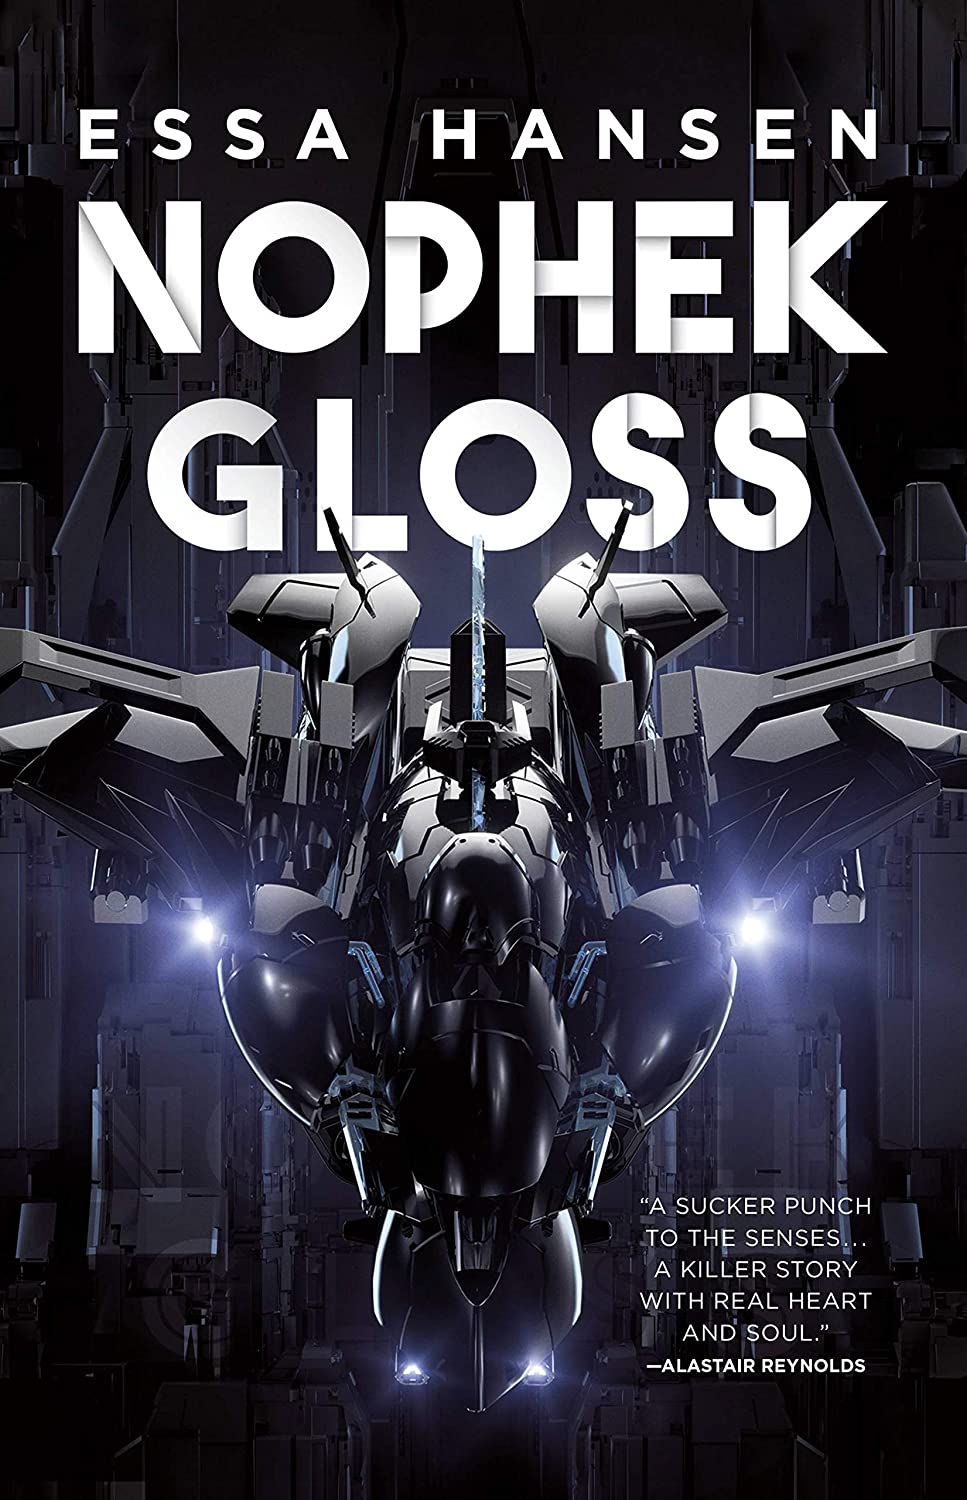 Essa Hansen: Five Things I Learned Writing Nophek Gloss